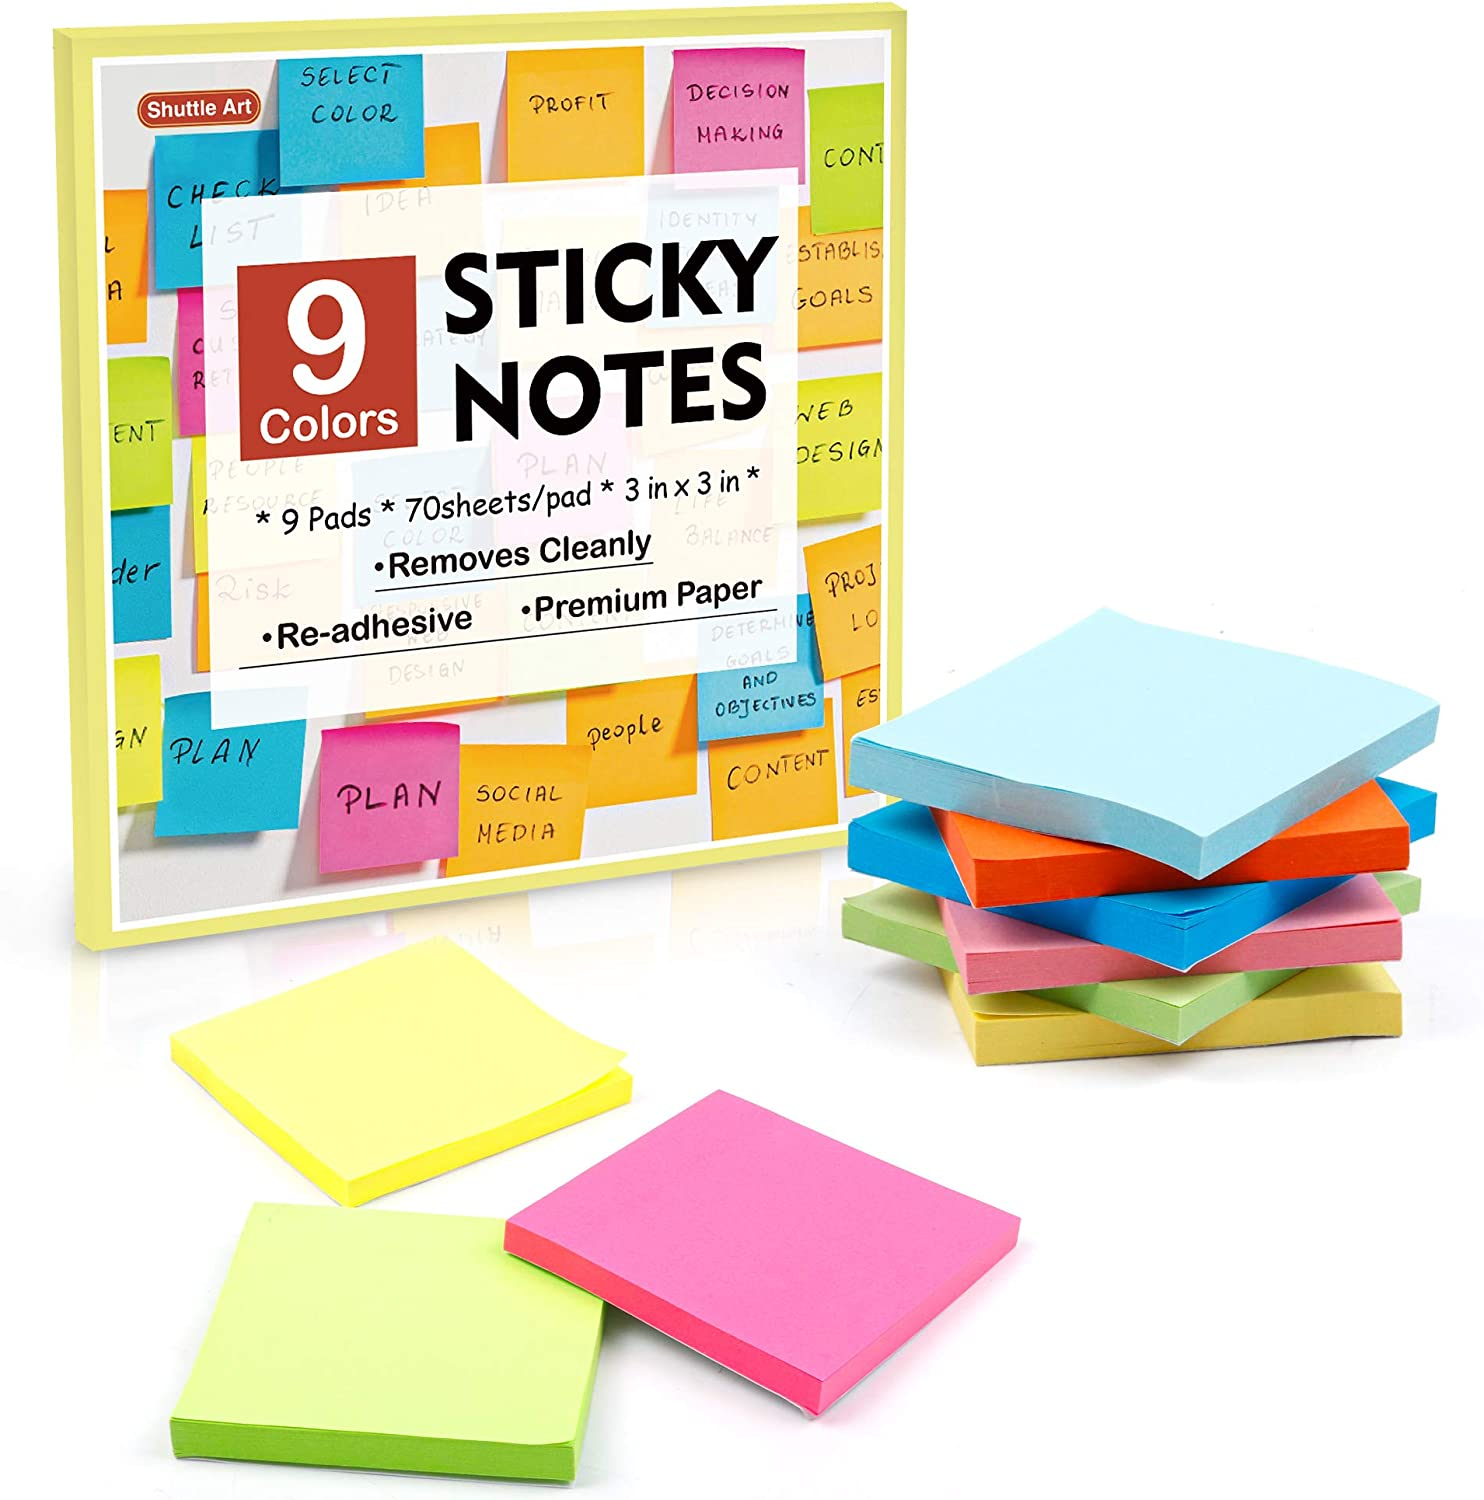 Sticky Notes, Shuttle Art 9 Bright Colors Stickies, 9 Pads 630 Sheets Total, 3x3 Inches Self-Stick Pads for Home, School, Office